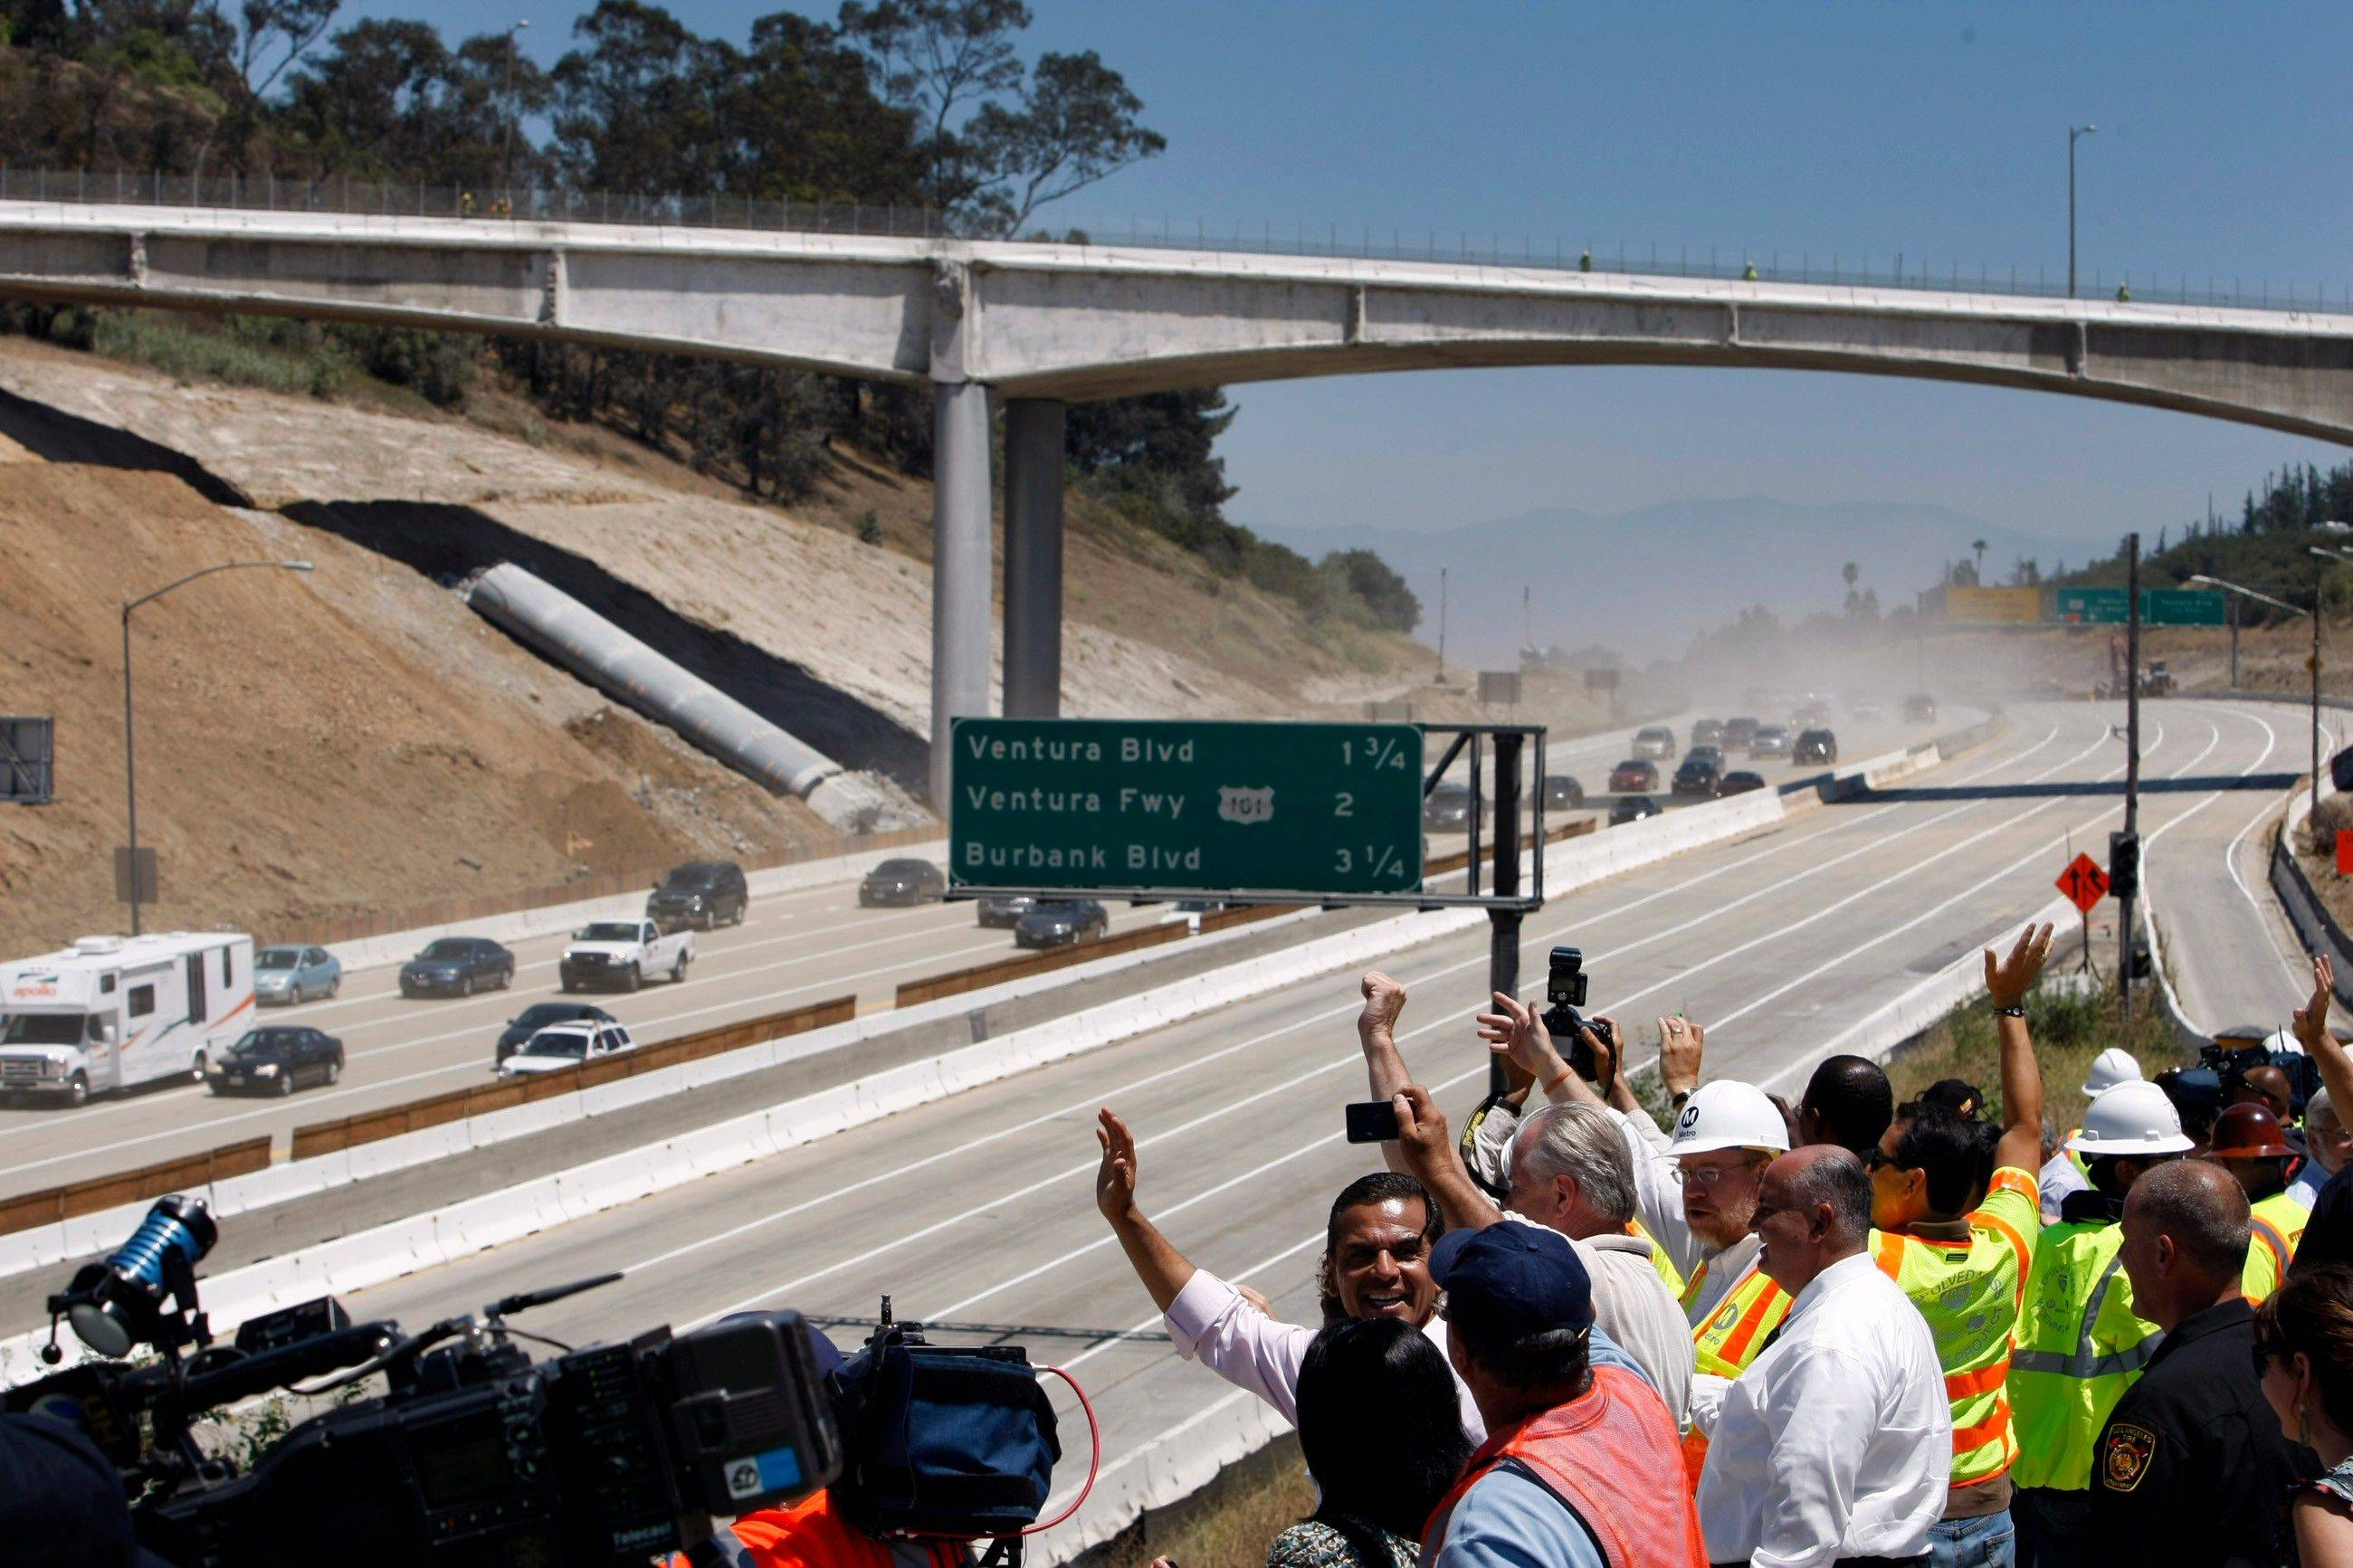 Los Angeles Mayor Antonio Villaraigosa, left, and other officials celebrate the demolition of two lanes of the Mulholland Drive bridge over Interstate 405 ahead of schedule in Los Angeles on Sunday.